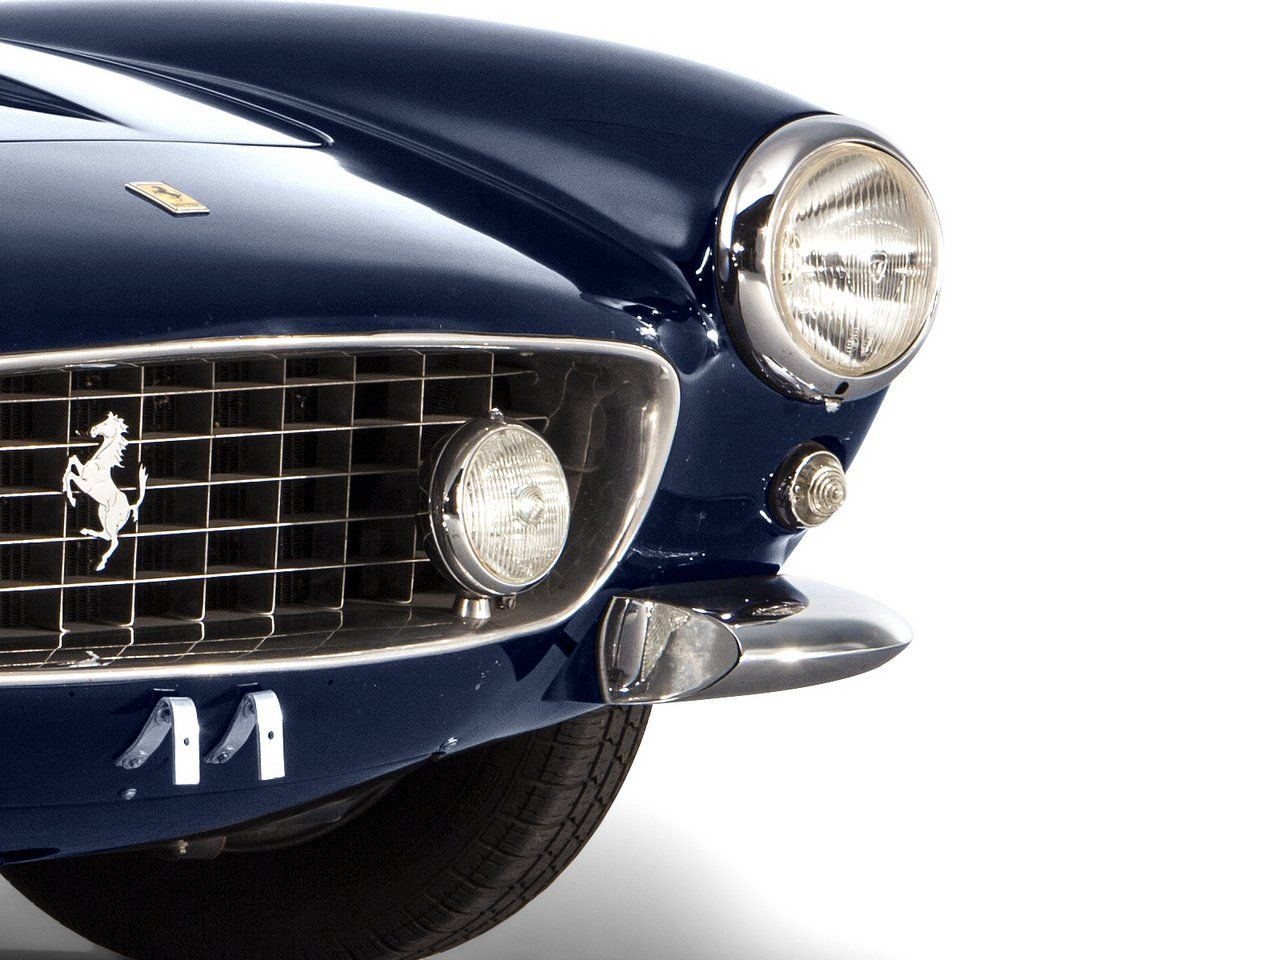 ferrari-250-gt-swb-4065gt-artcurial-auction_0-100_4